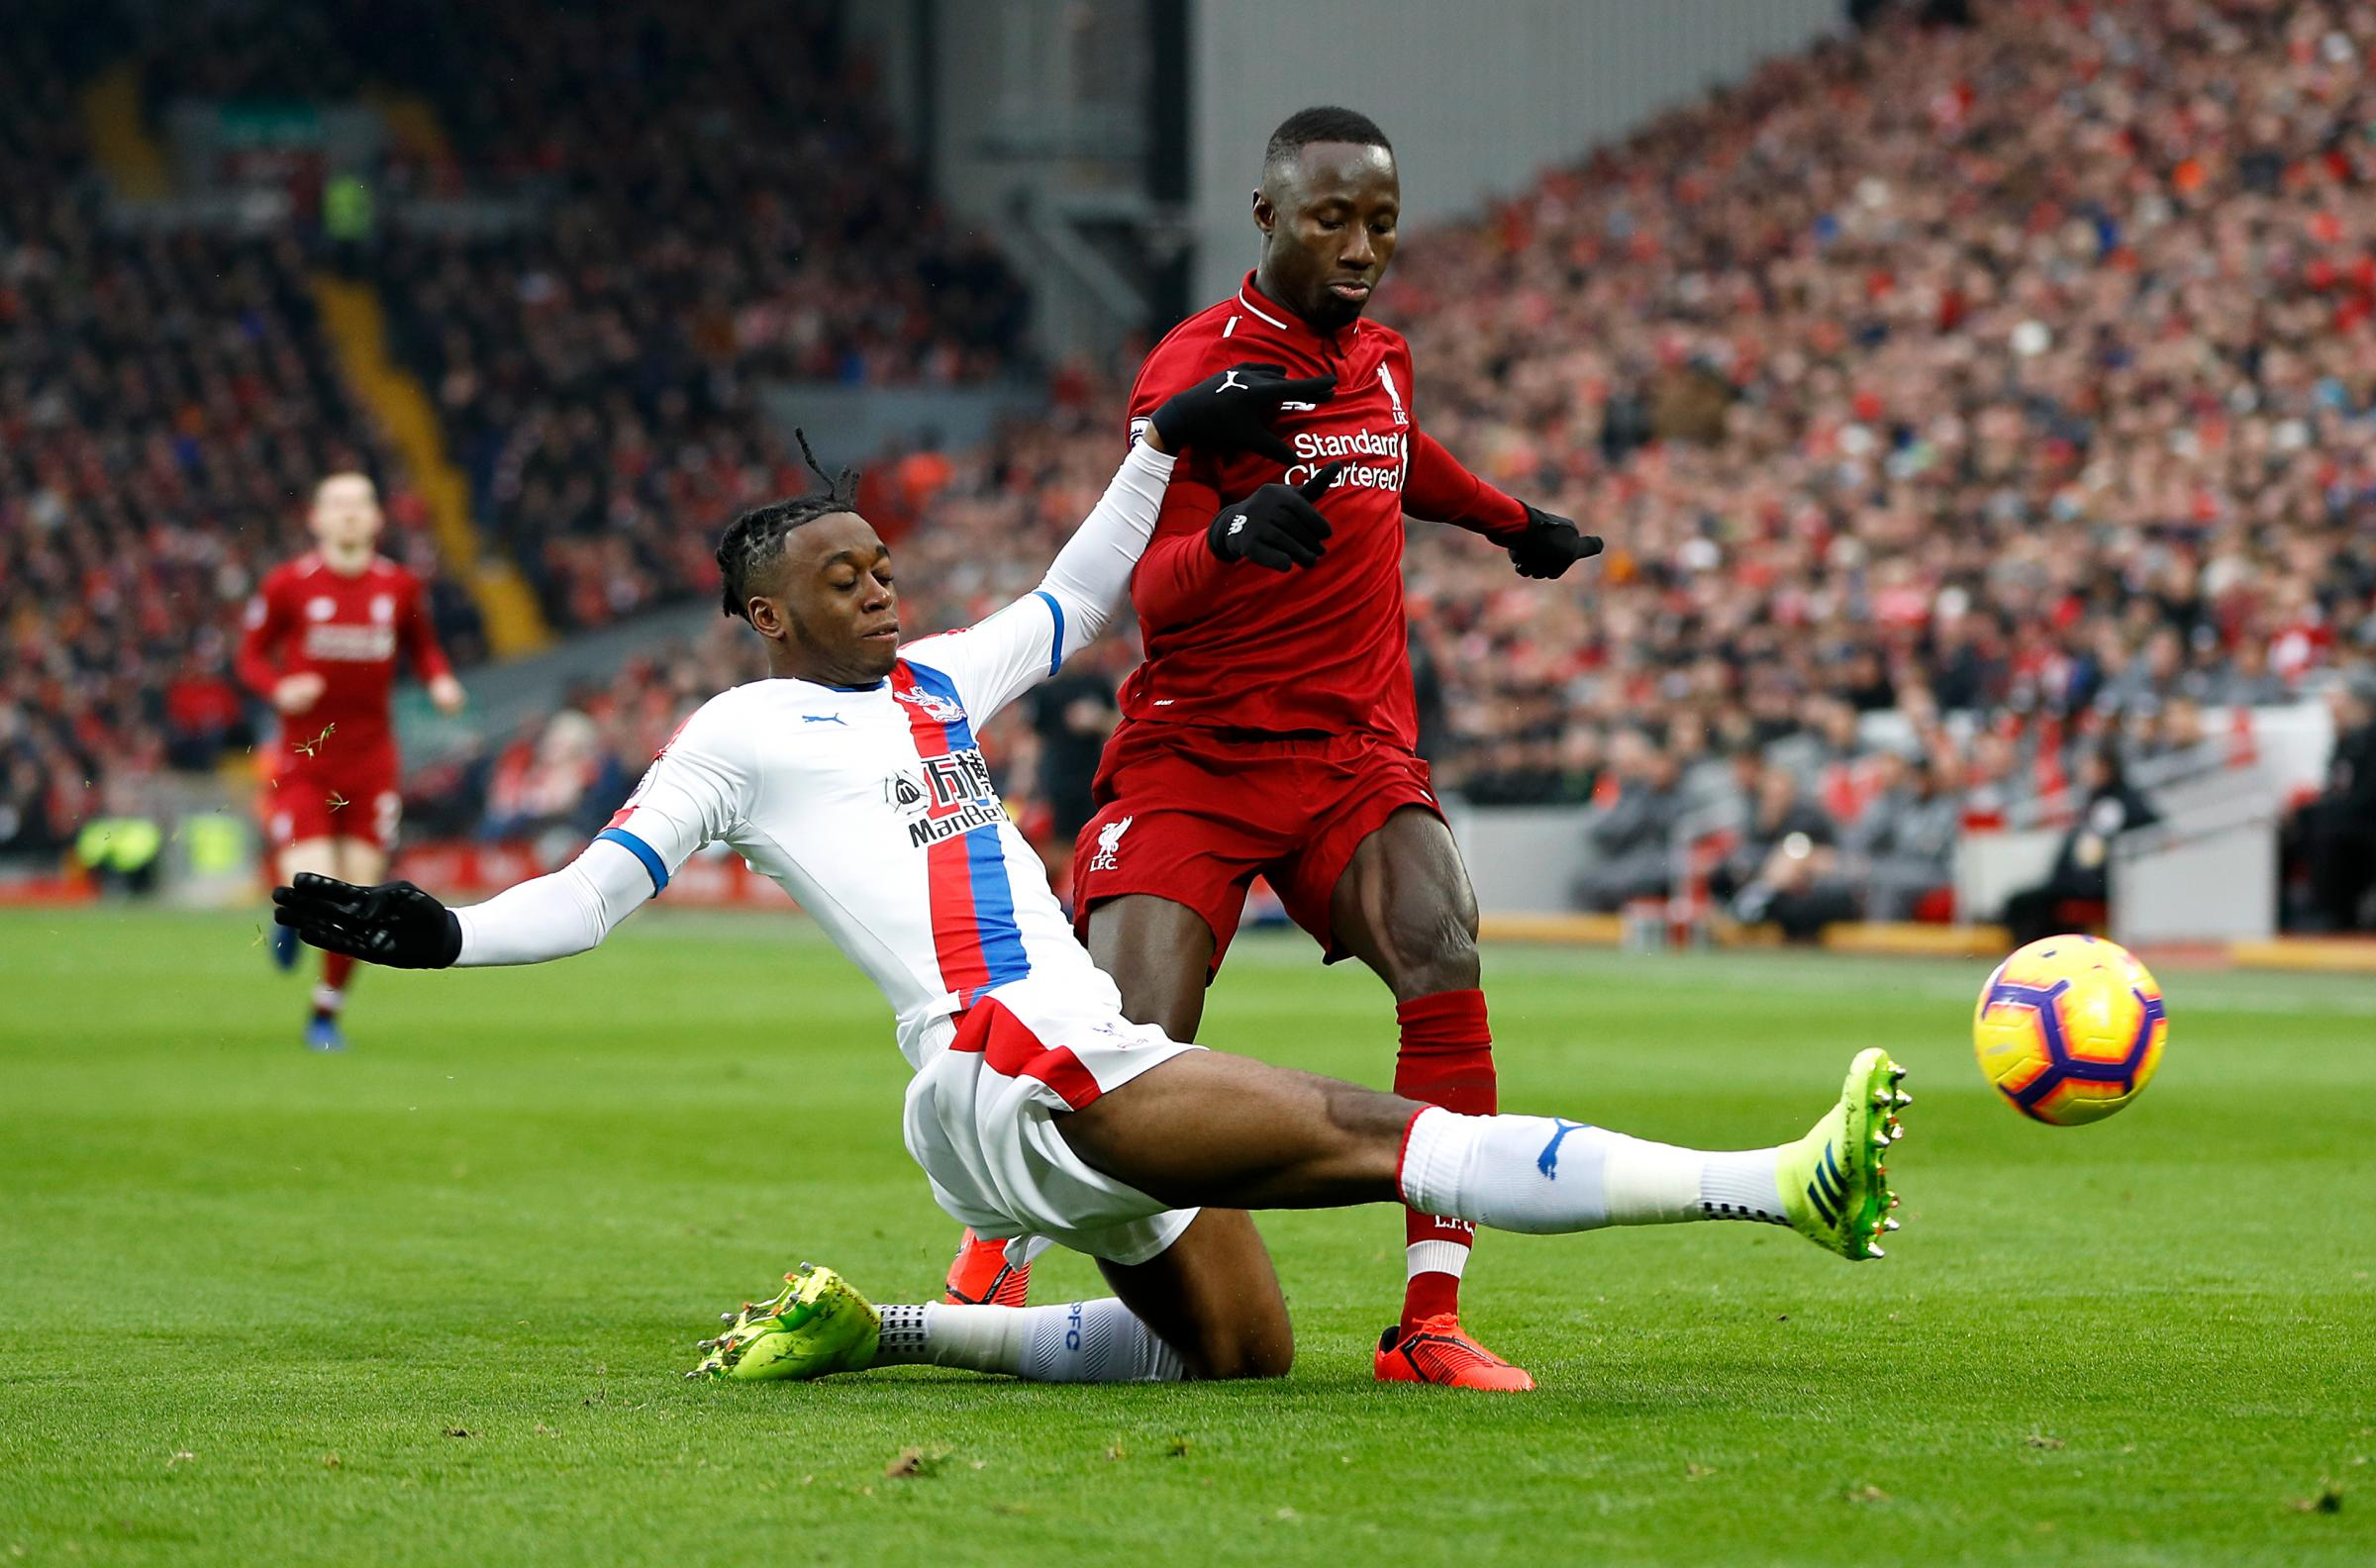 Crystal Palace's Aaron Wan-Bissaka  (Photo credit: Darren Staples/PA Wire)